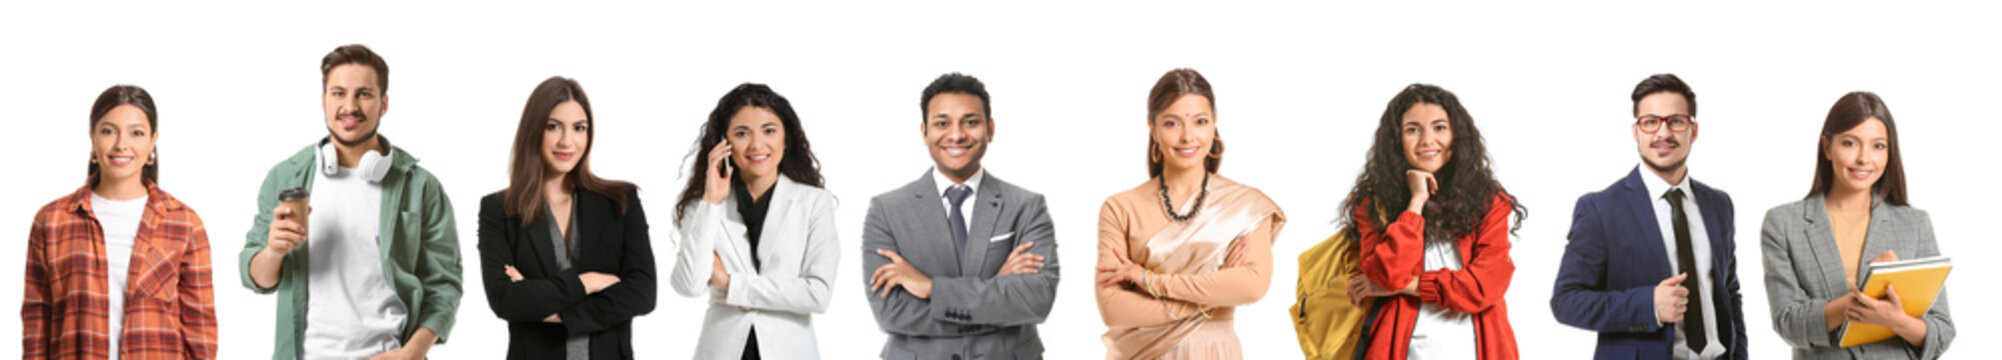 Collage with young Indian people on white background